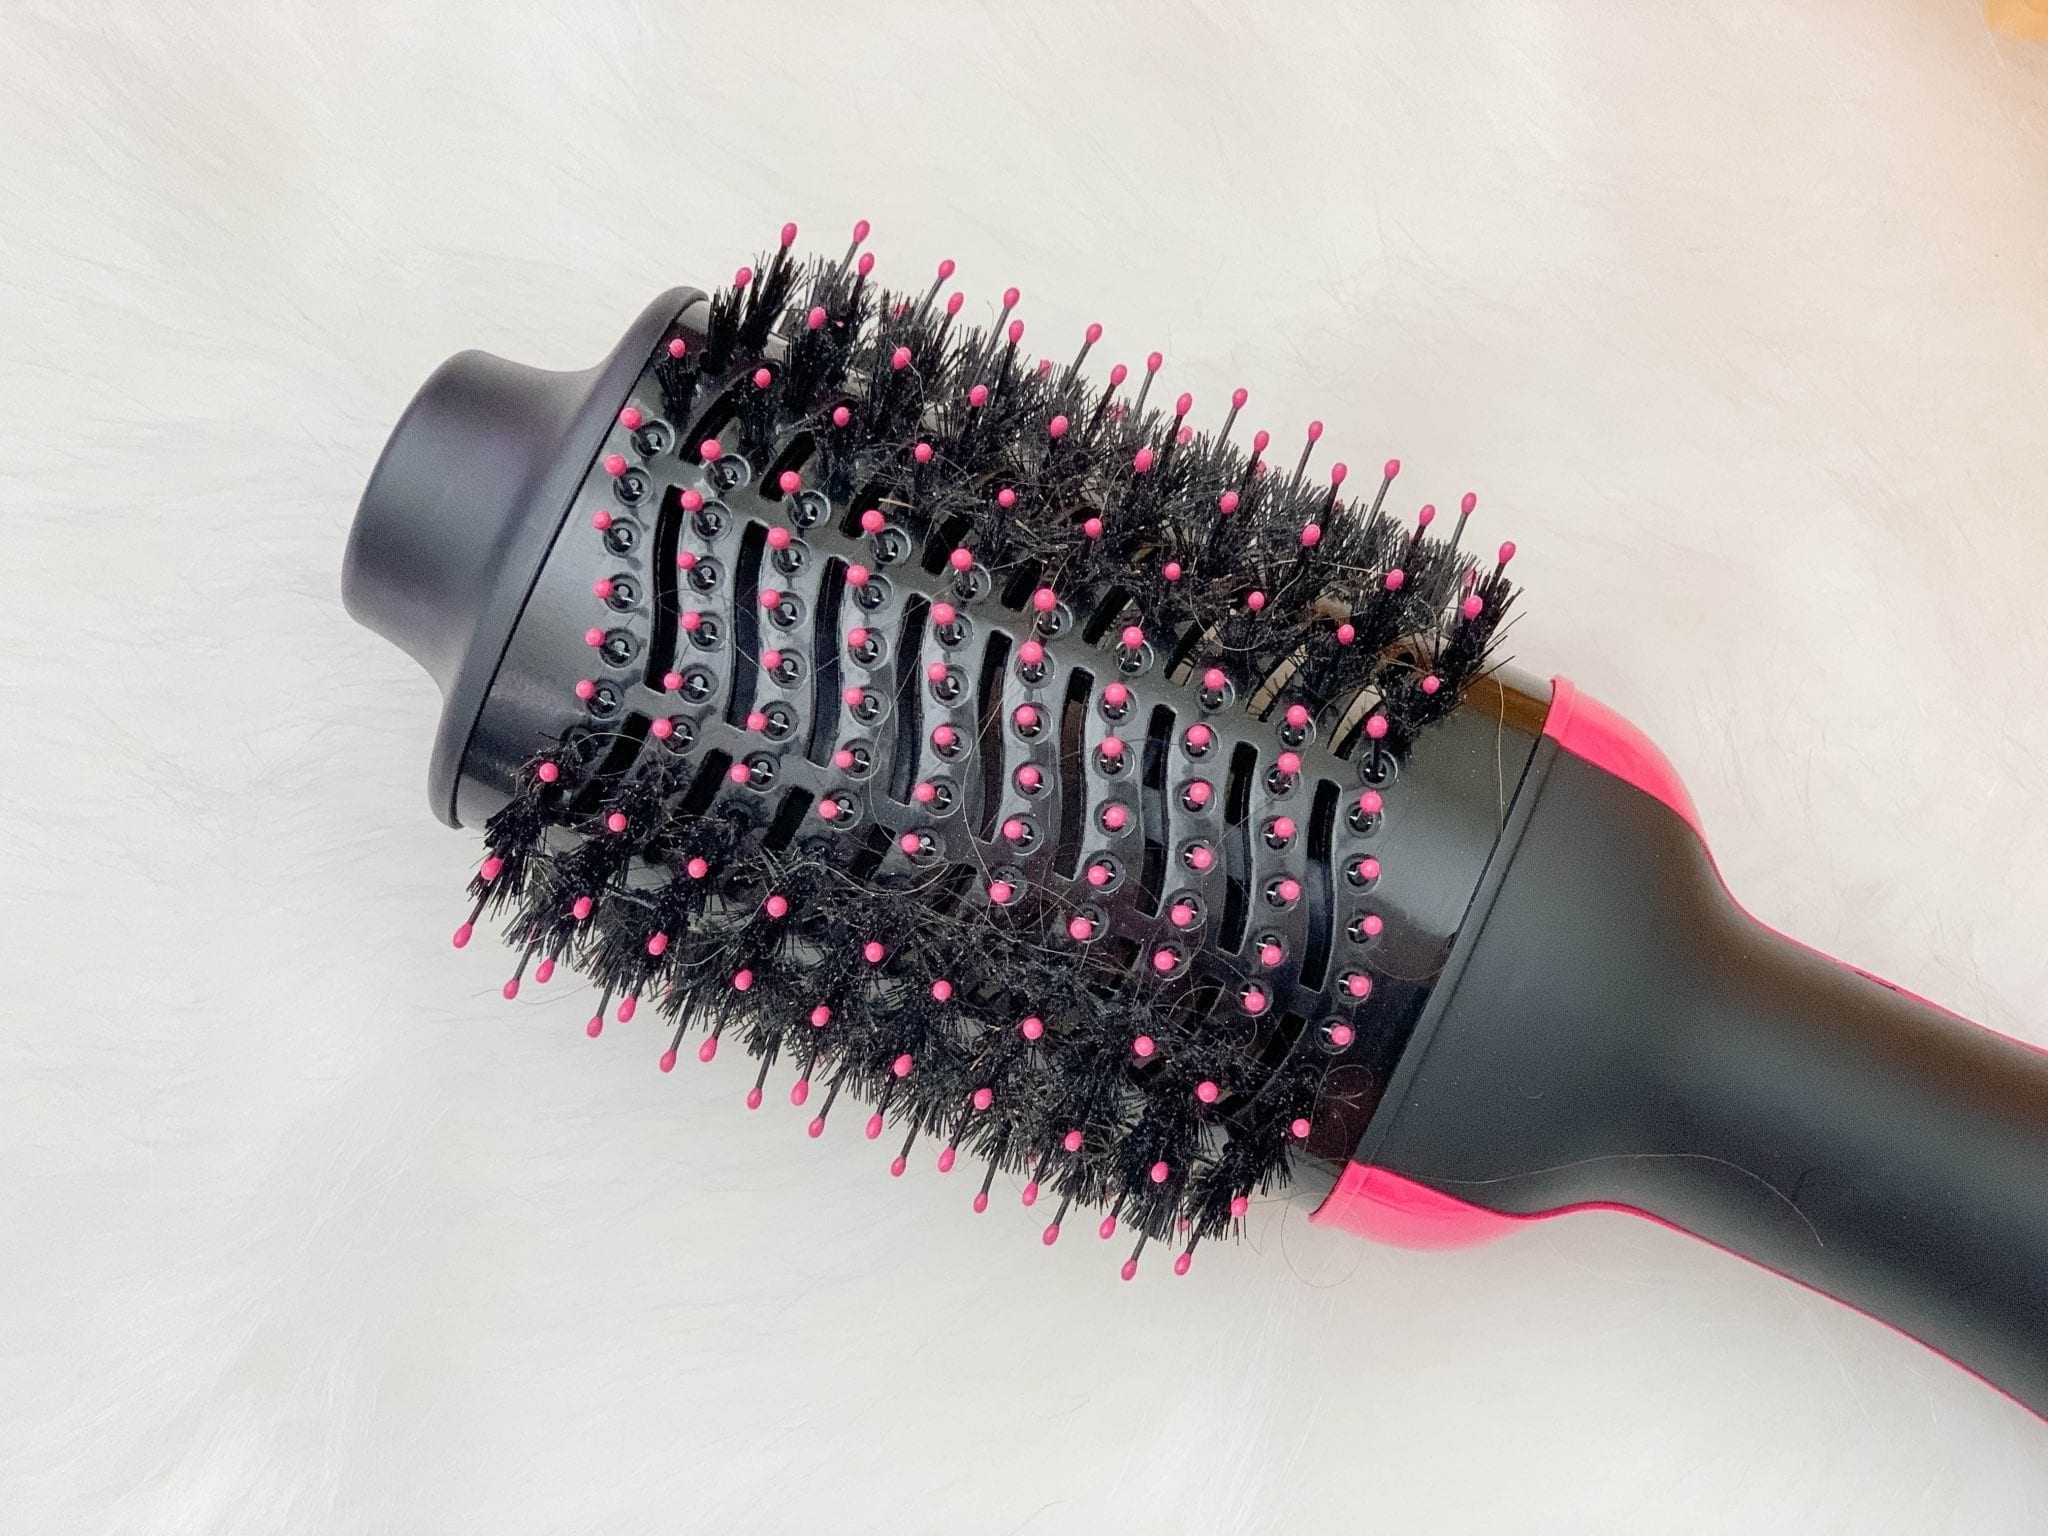 Revlon One-Step Dryer